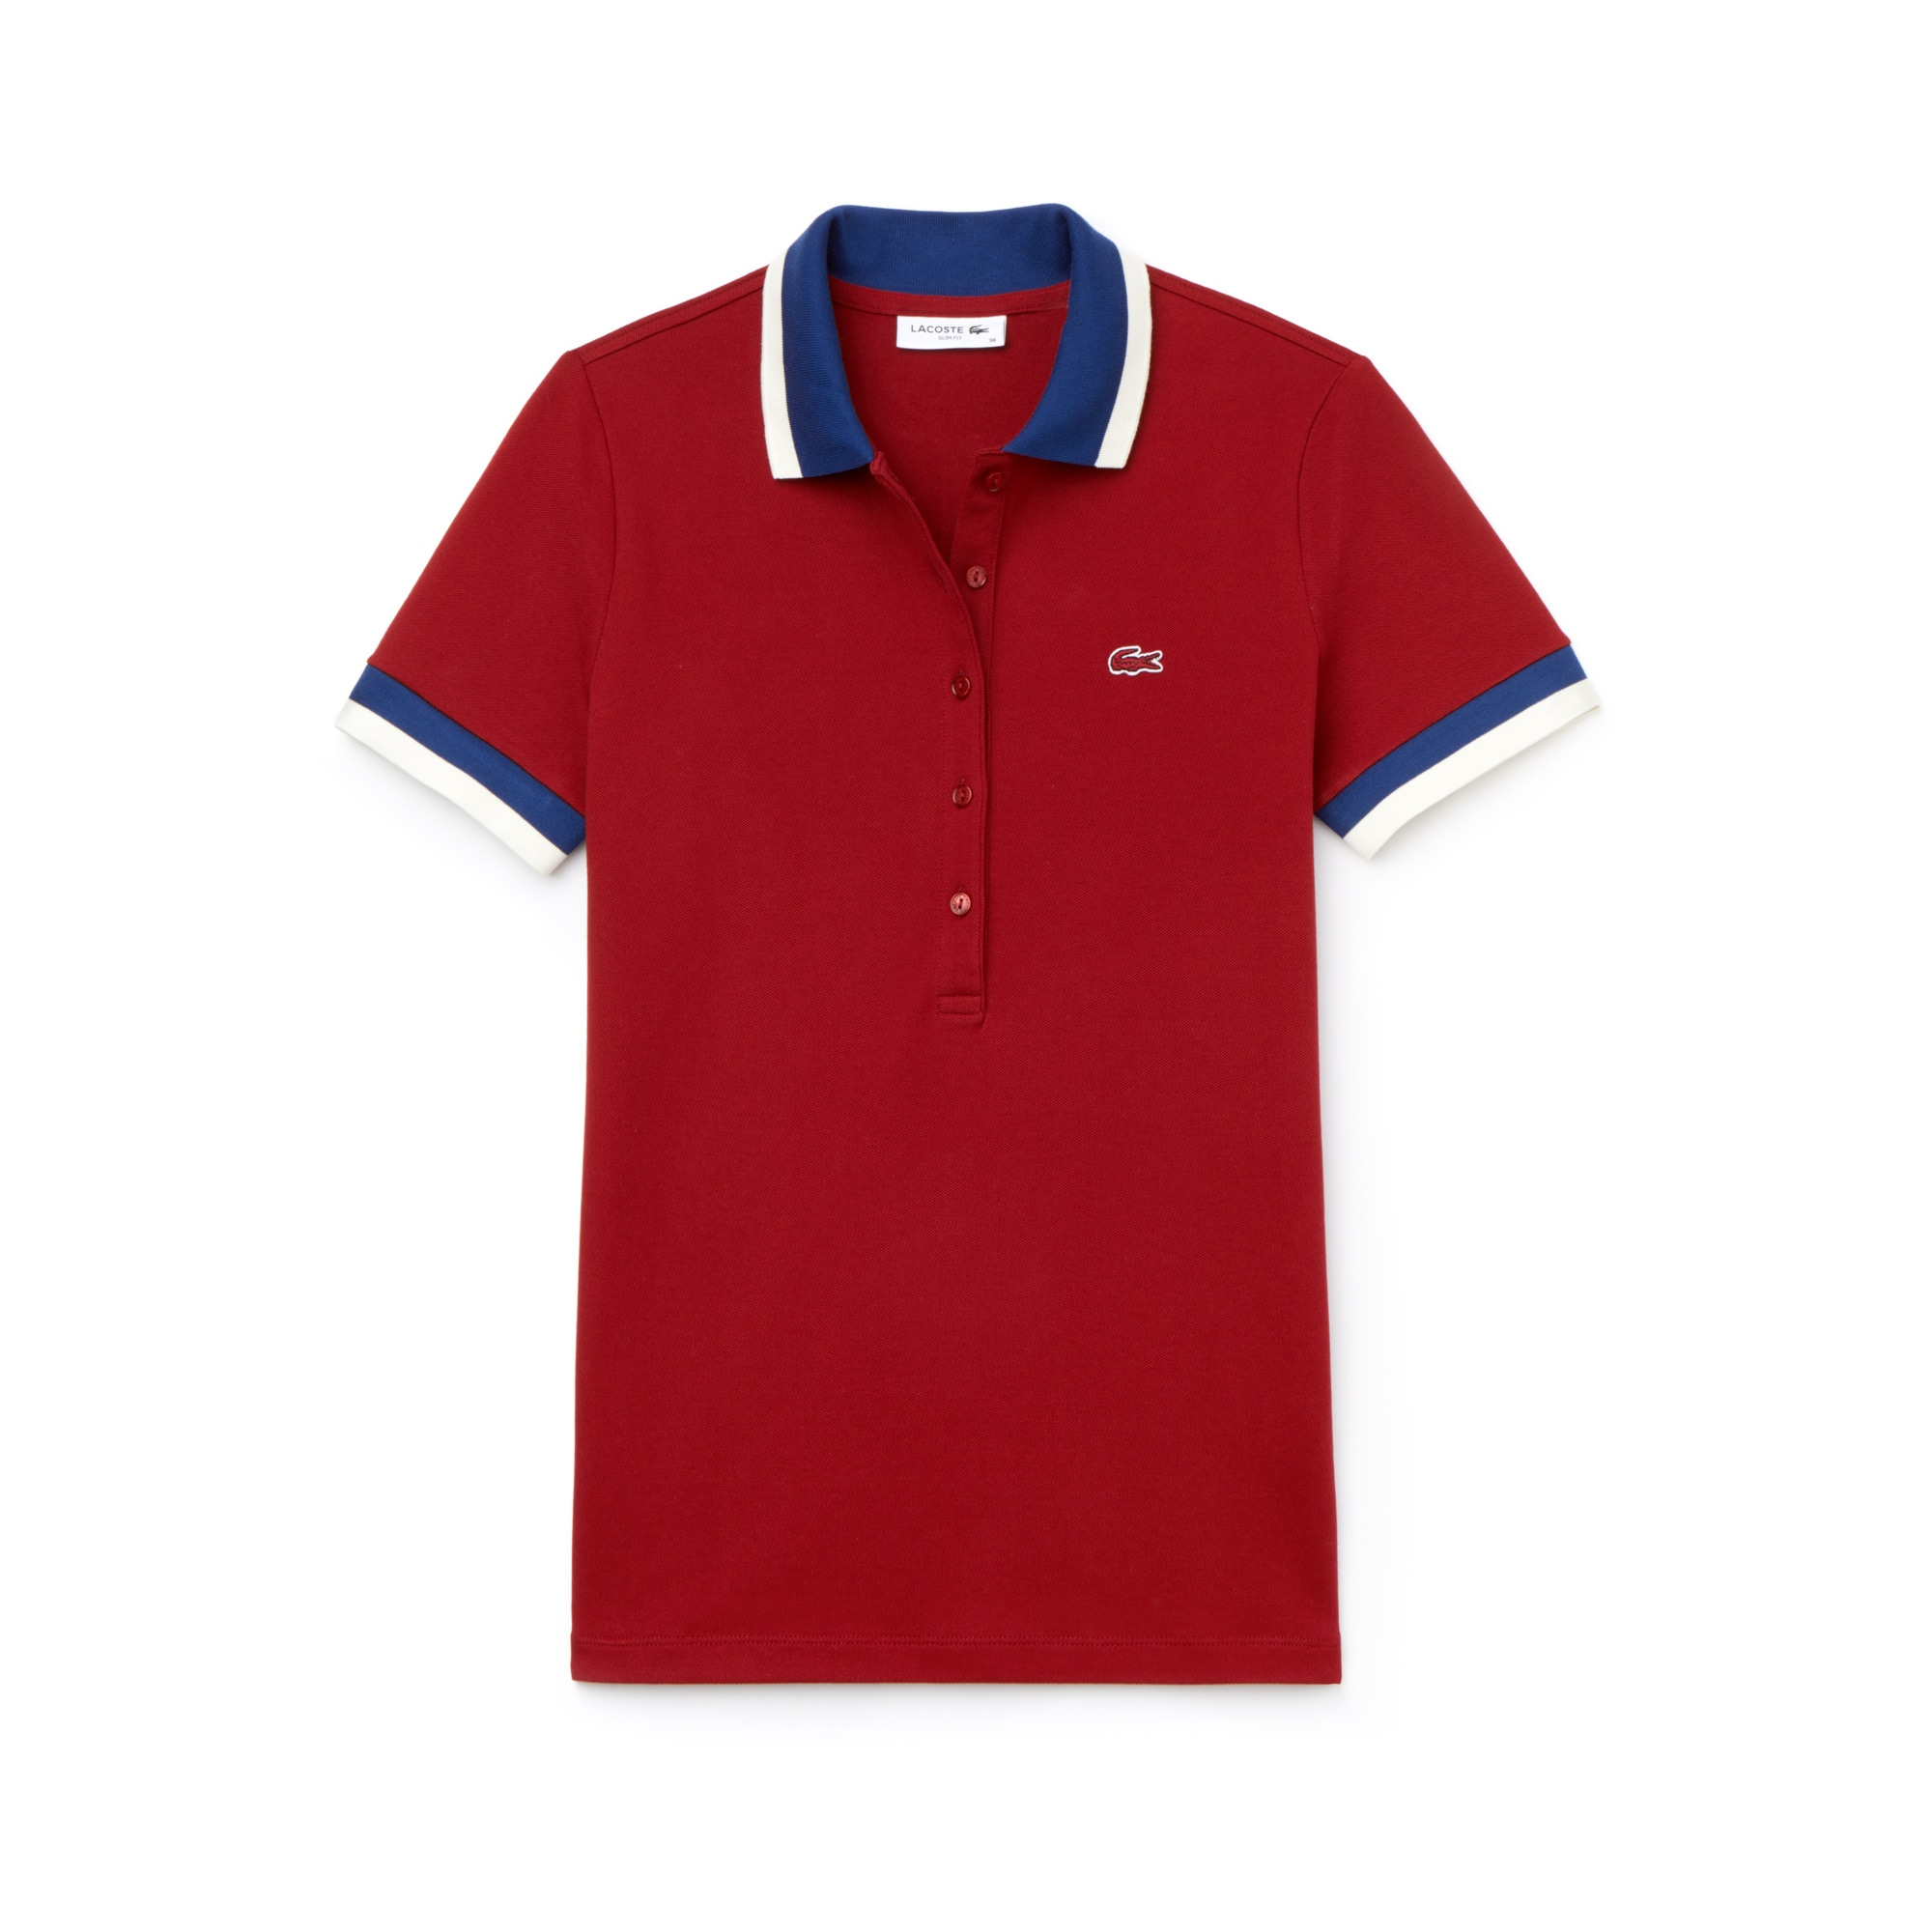 라코스테 Lacoste Womens Slim Fit Bicolor Finishes Stretch Mini Pique Polo,red / navy blue / white